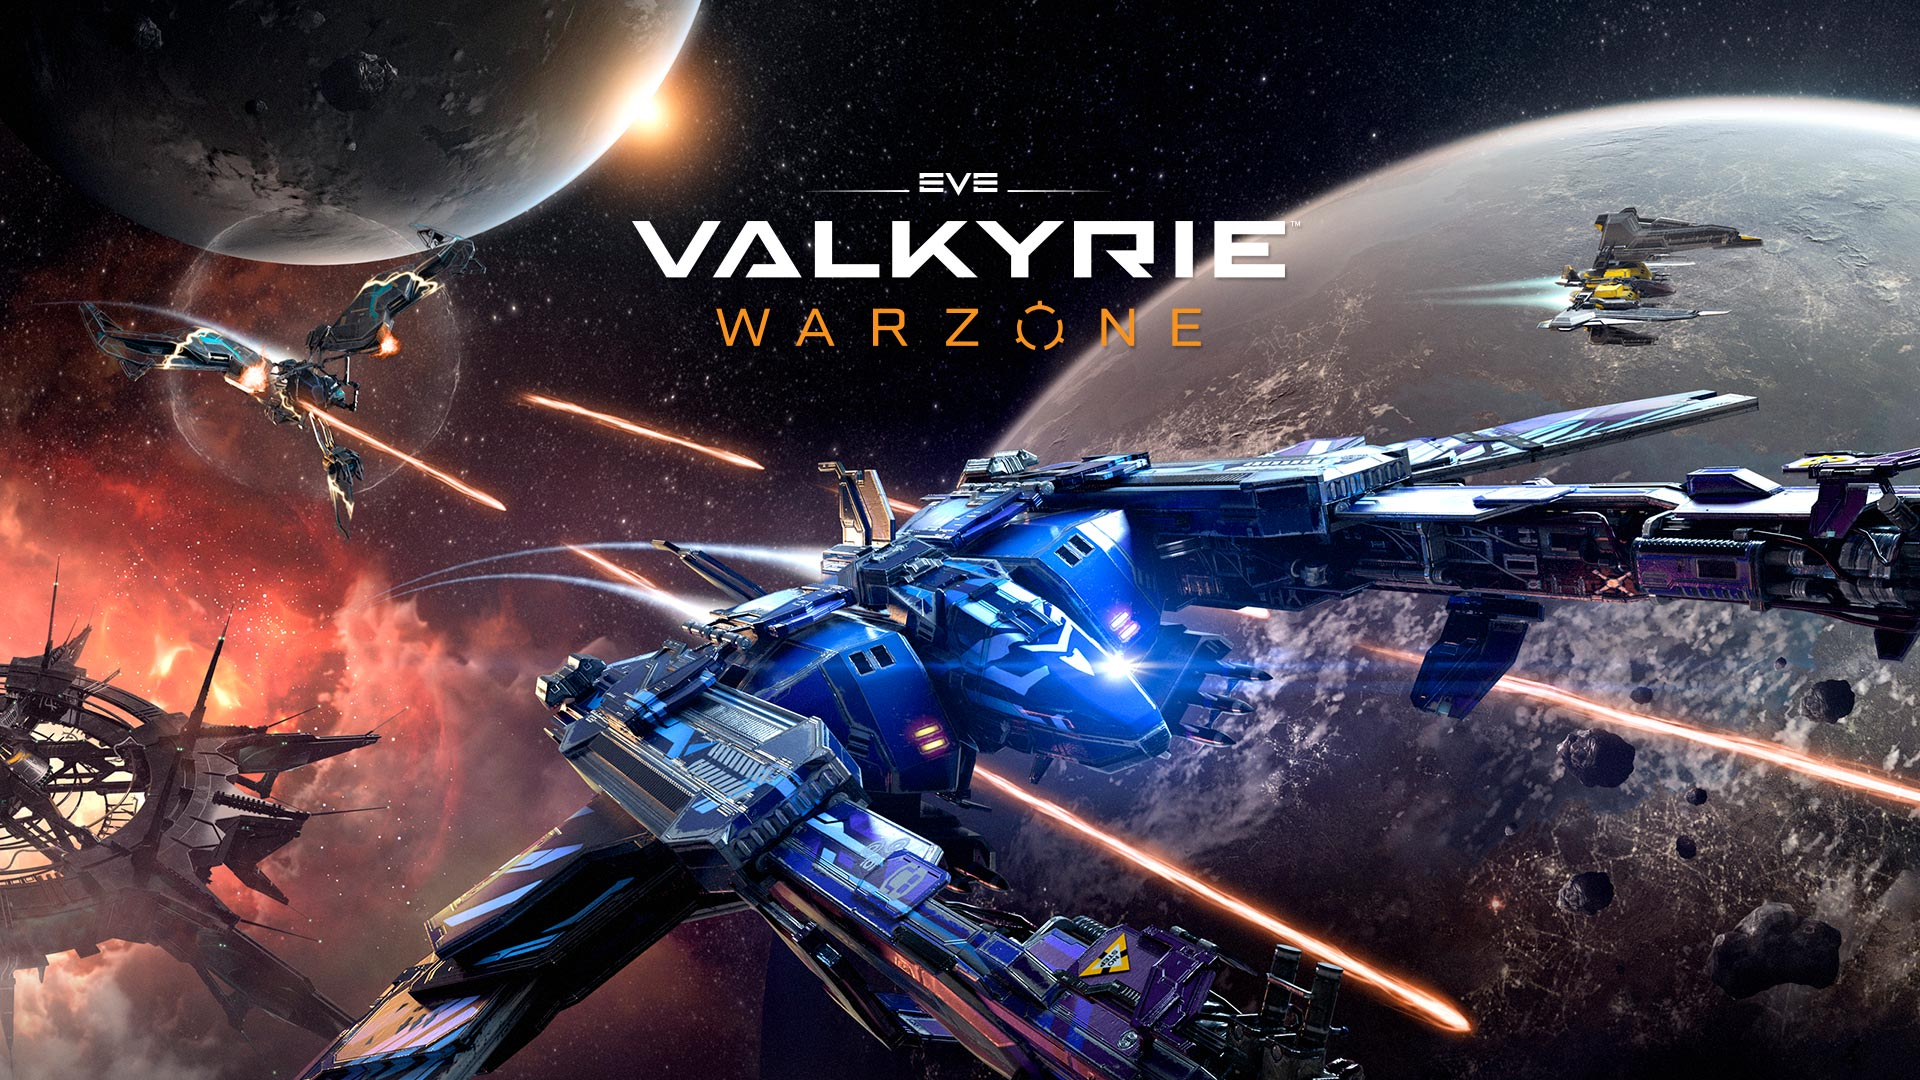 Eve Valkyrie Warzone Update Adding Non Vr Mode And Ps4